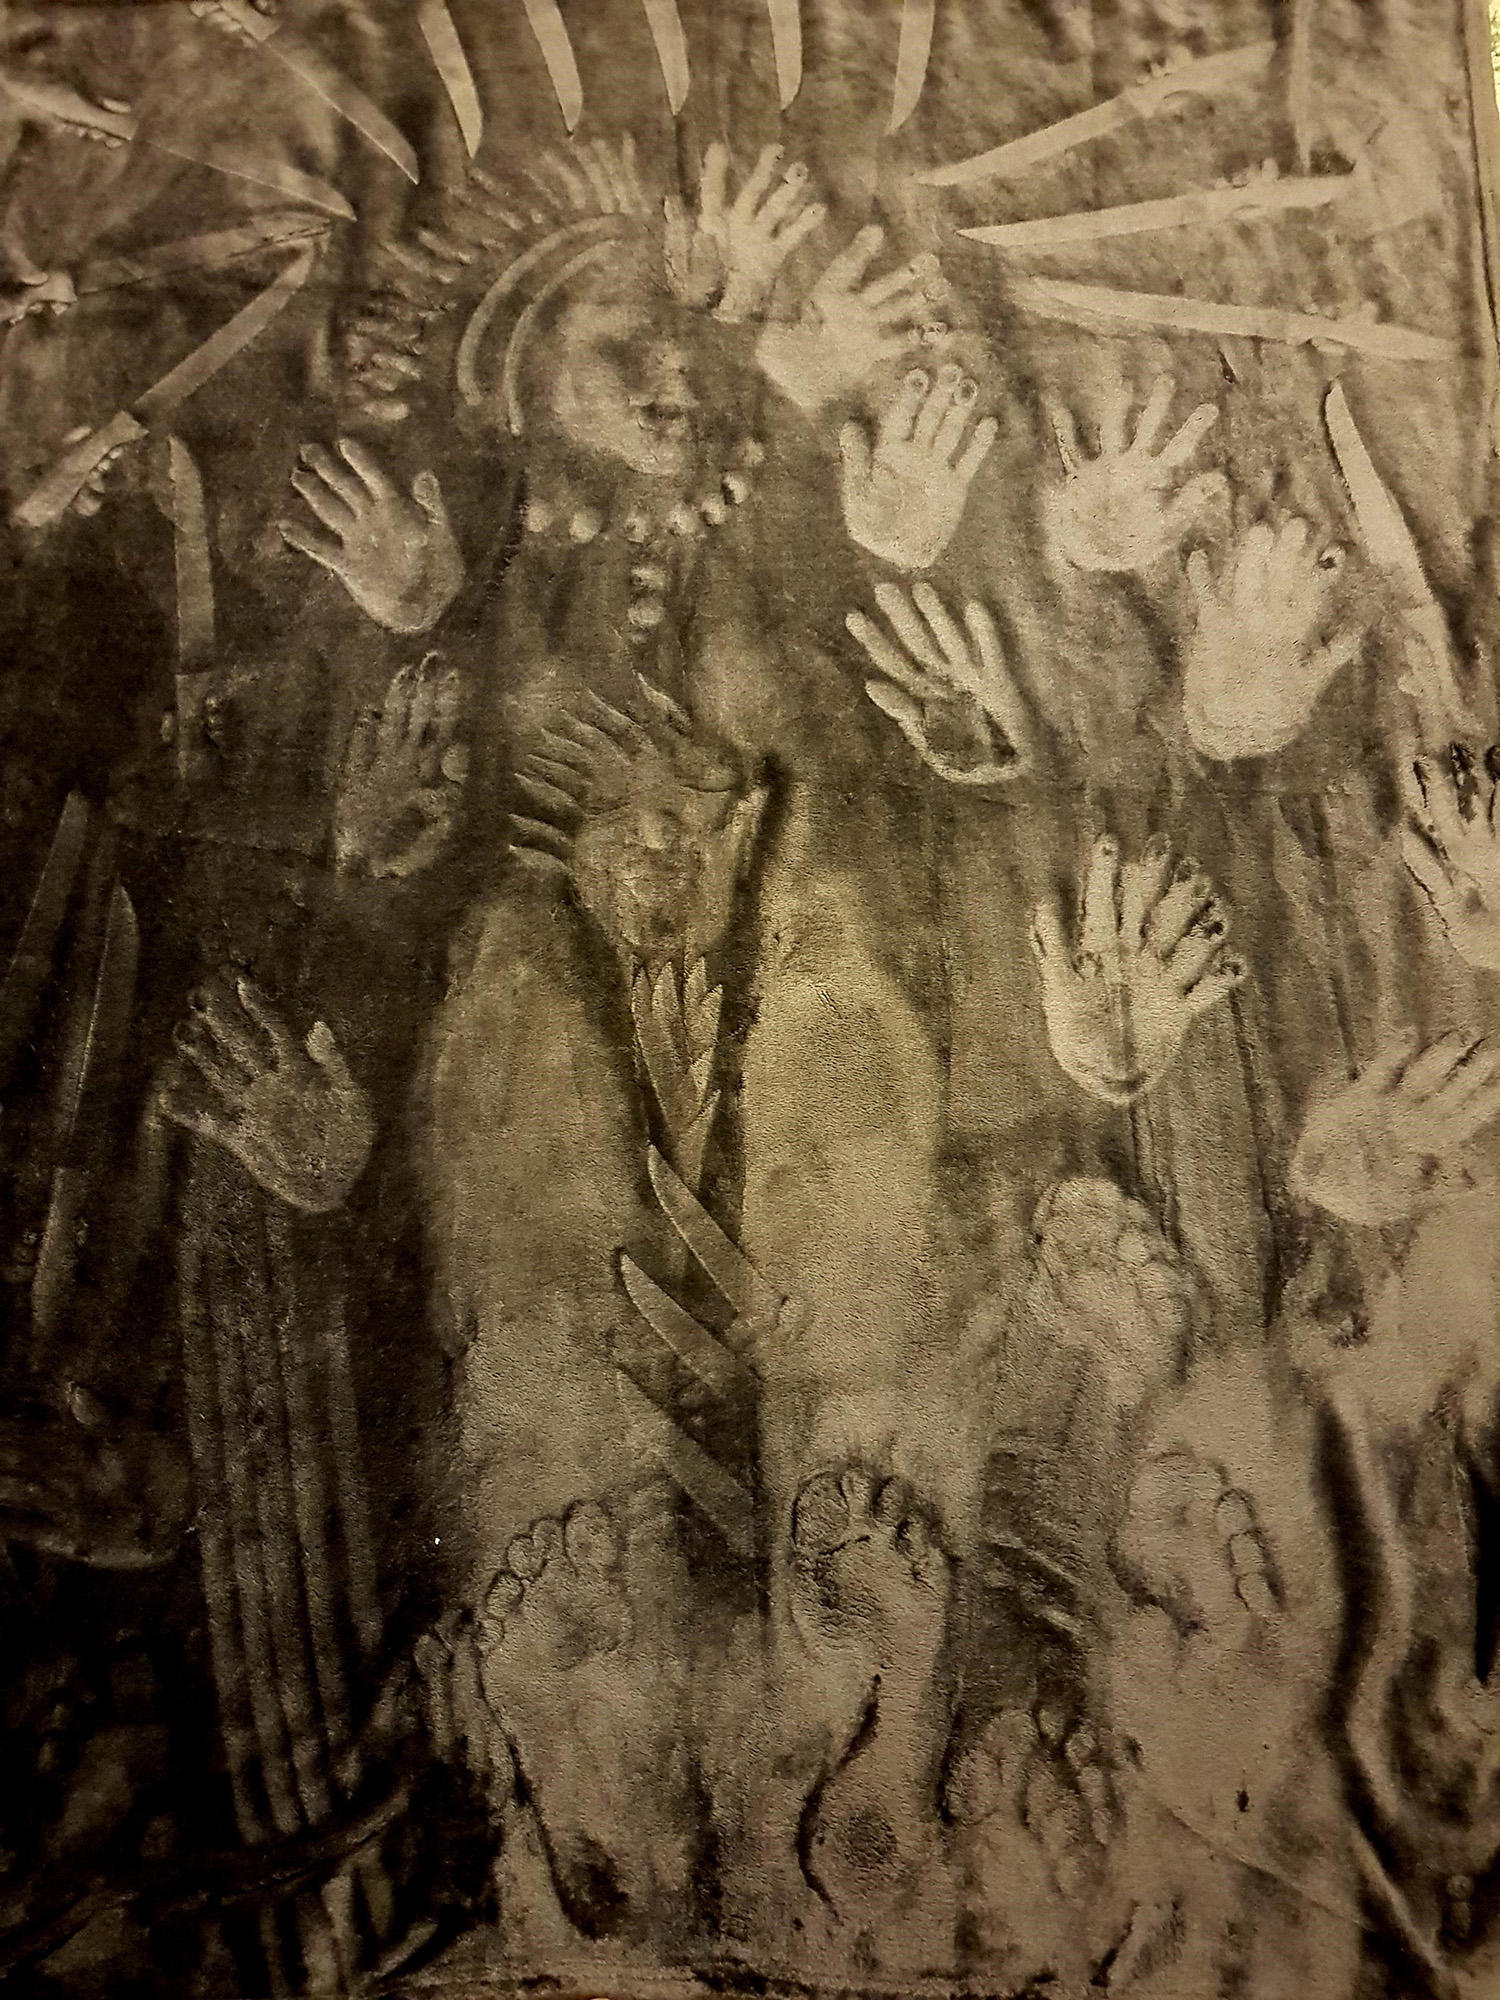 nightmare type image of faces, hands and feet as though pressed against the screen surrounded by knives